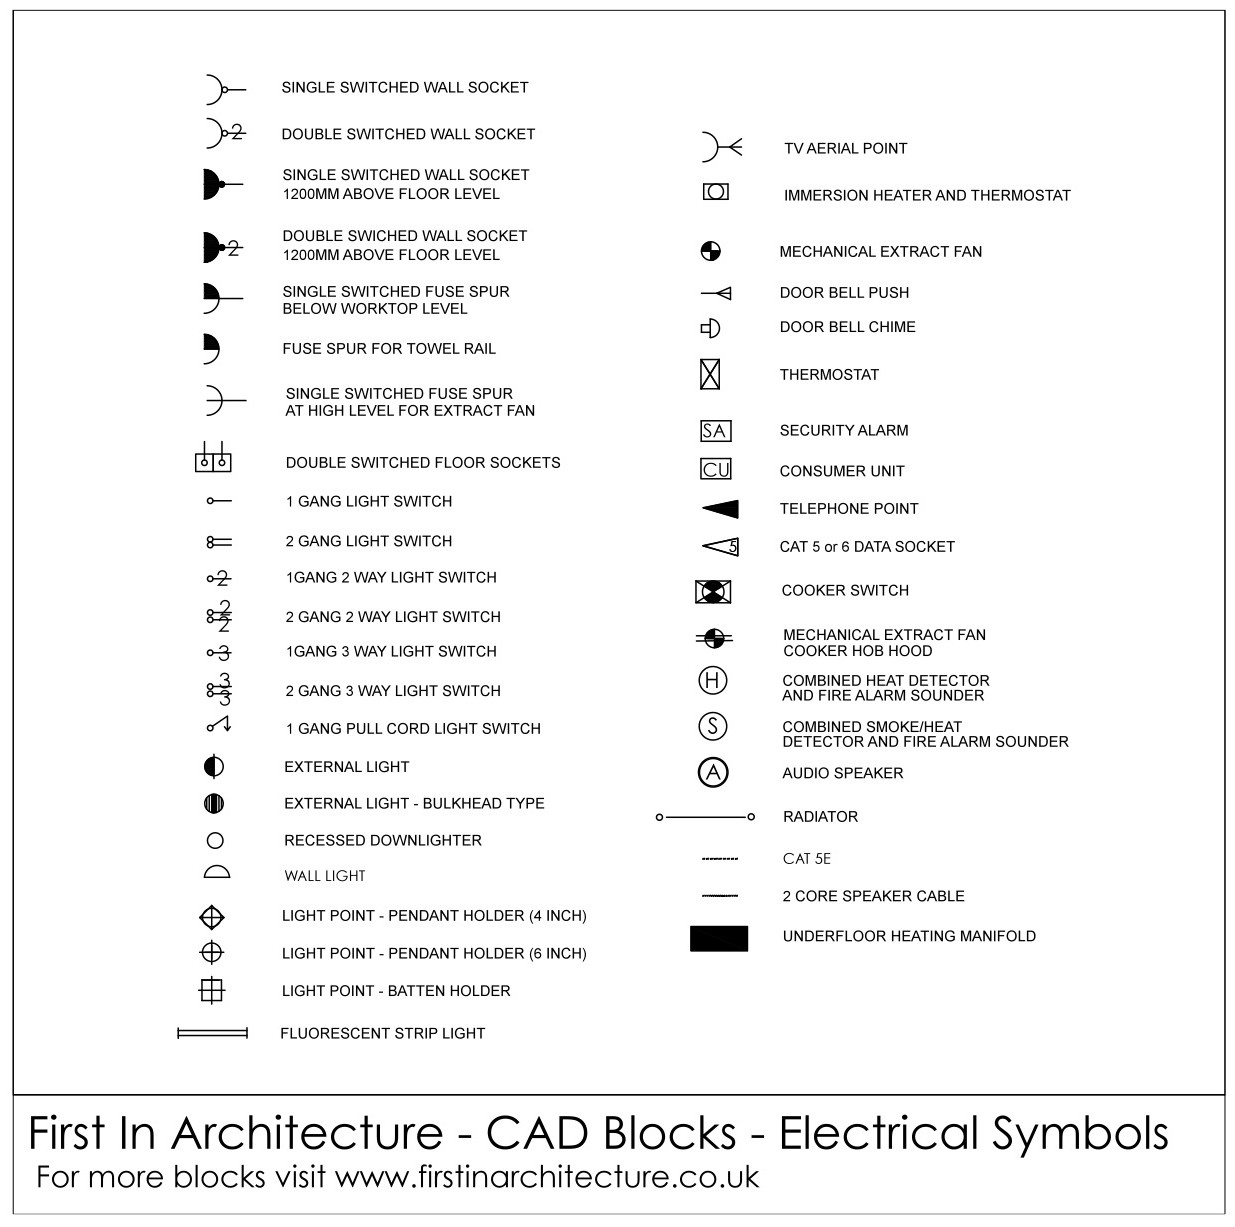 Electrical Symbols CAD Blocks 01  sc 1 st  First In Architecture & Free CAD Blocks - Electrical Symbols